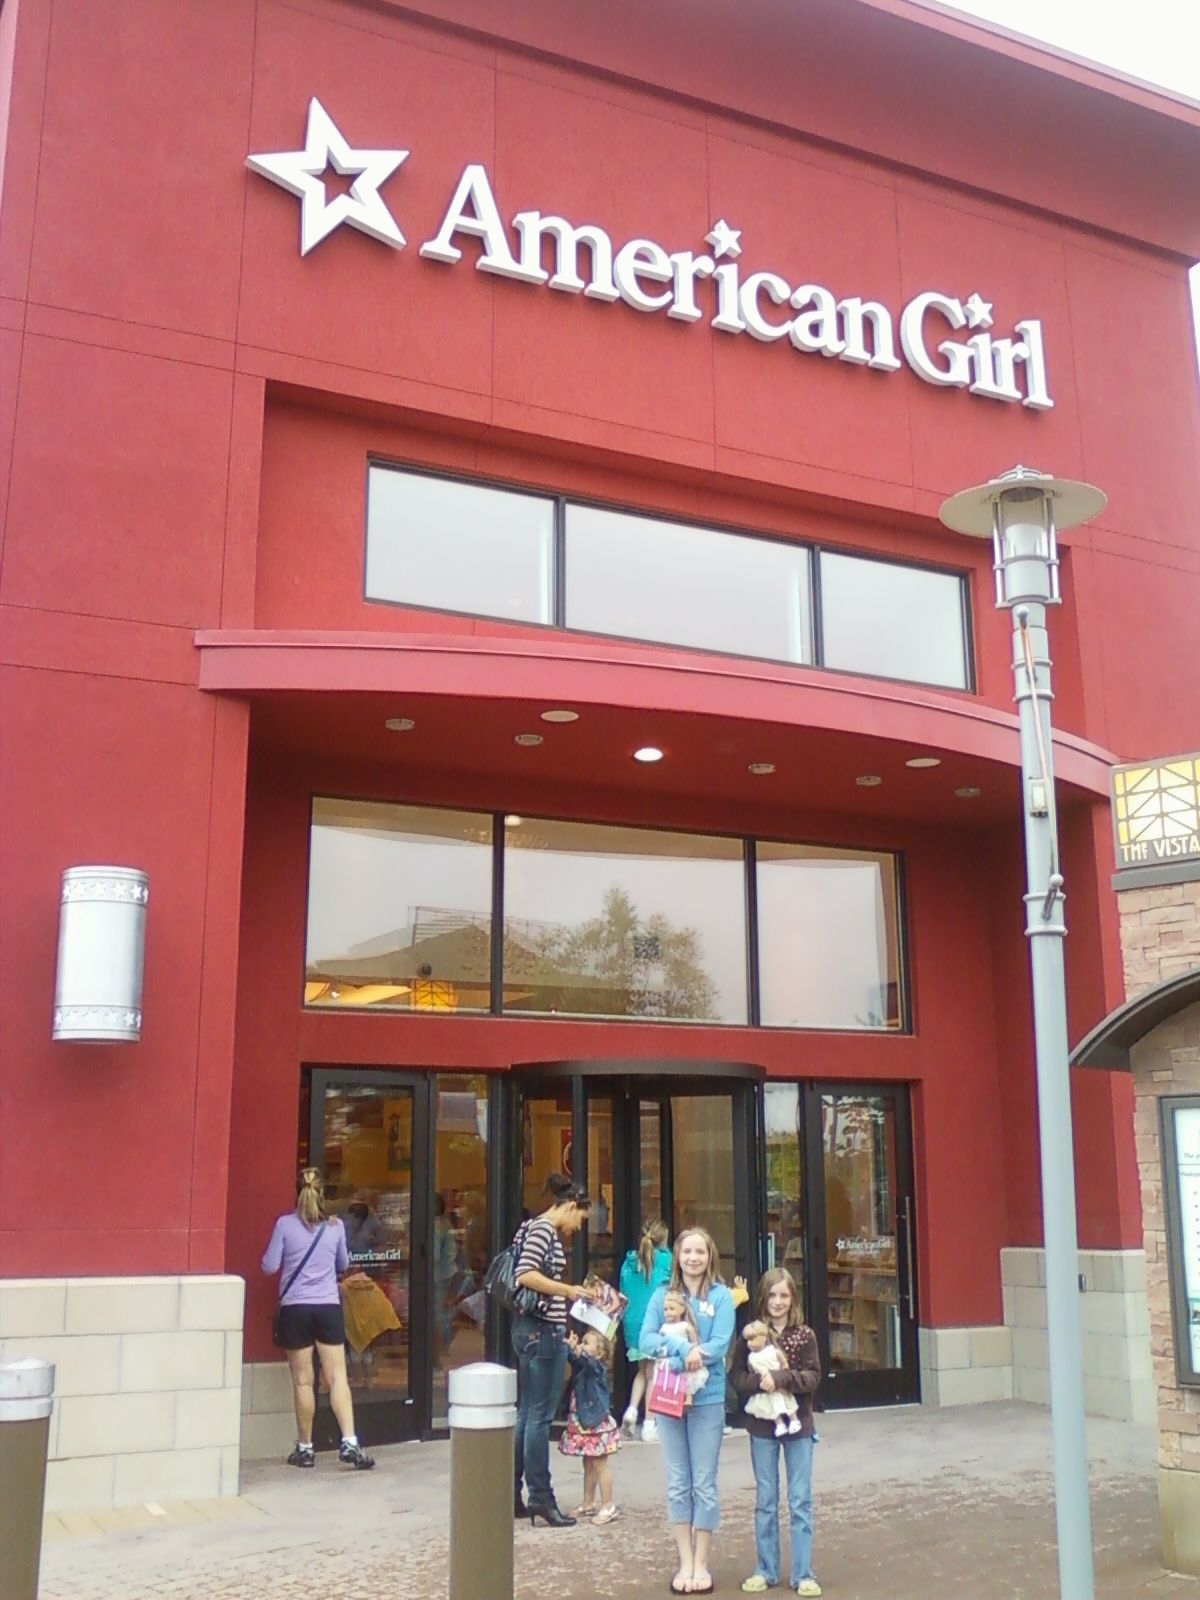 Pin By Christina Porcell On Our Future Home Denver Travel American Girl American Girl Doll